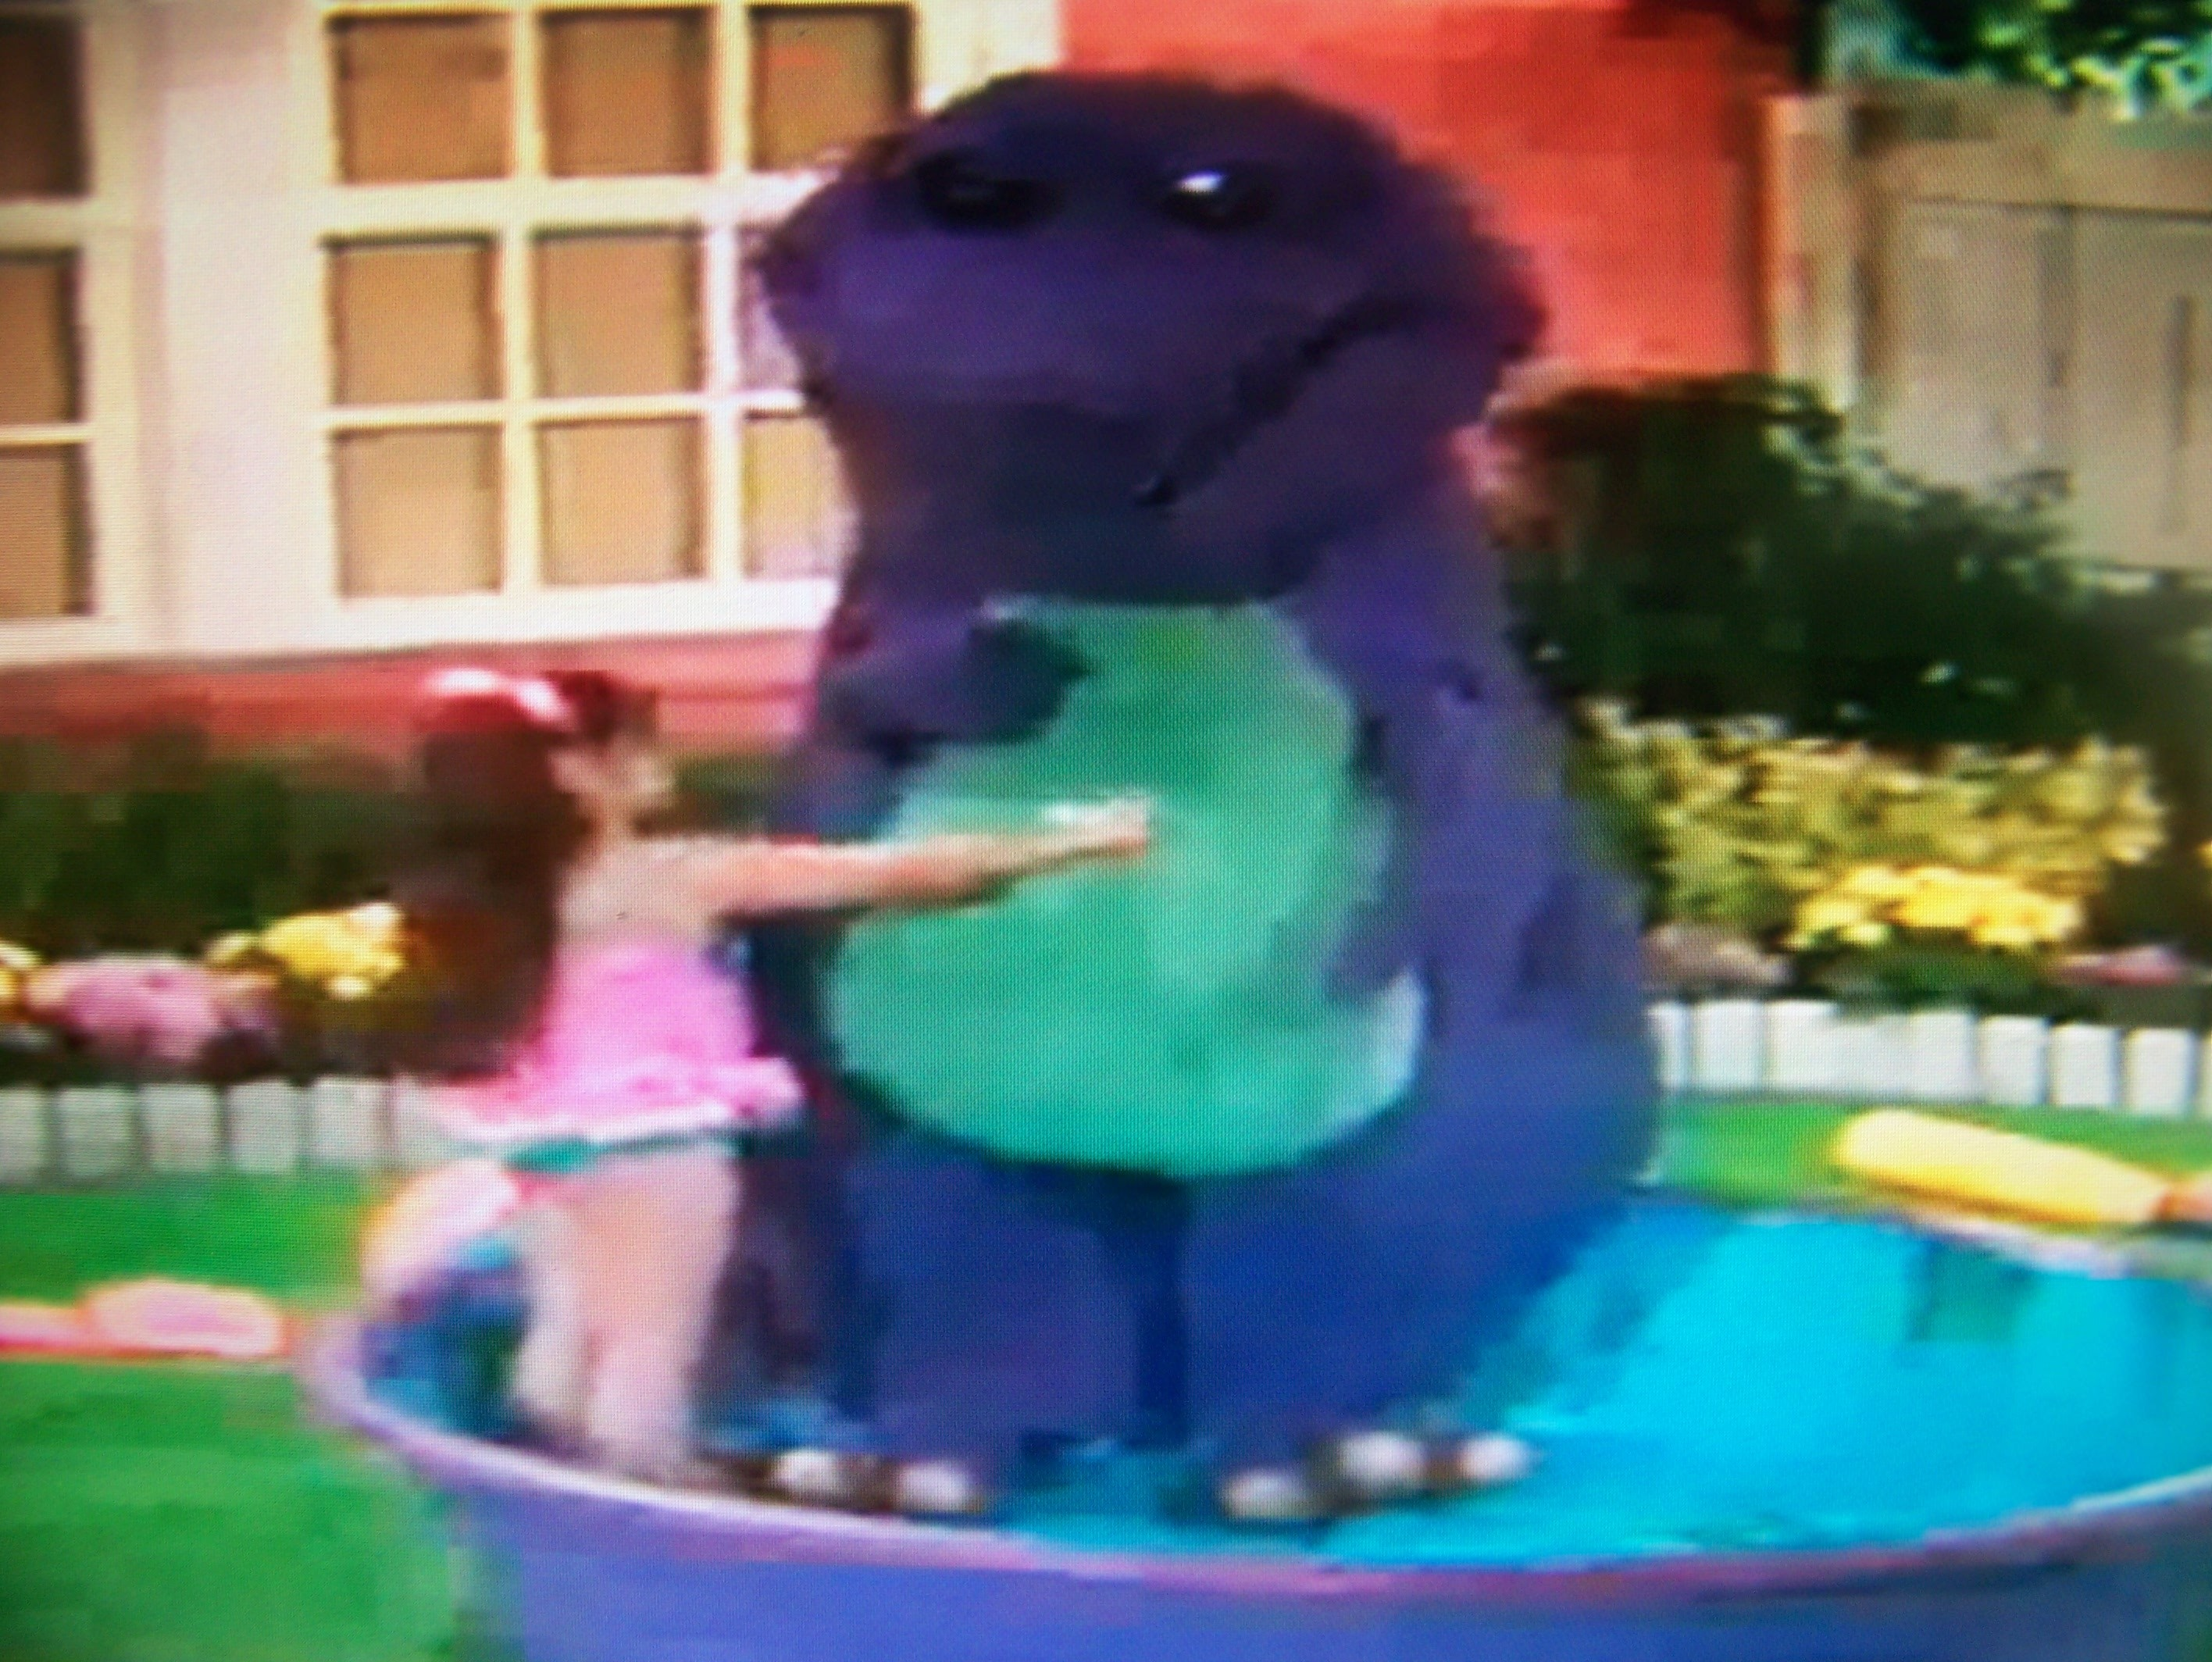 barney the purple dinosaur to you which was the saddest barney moment